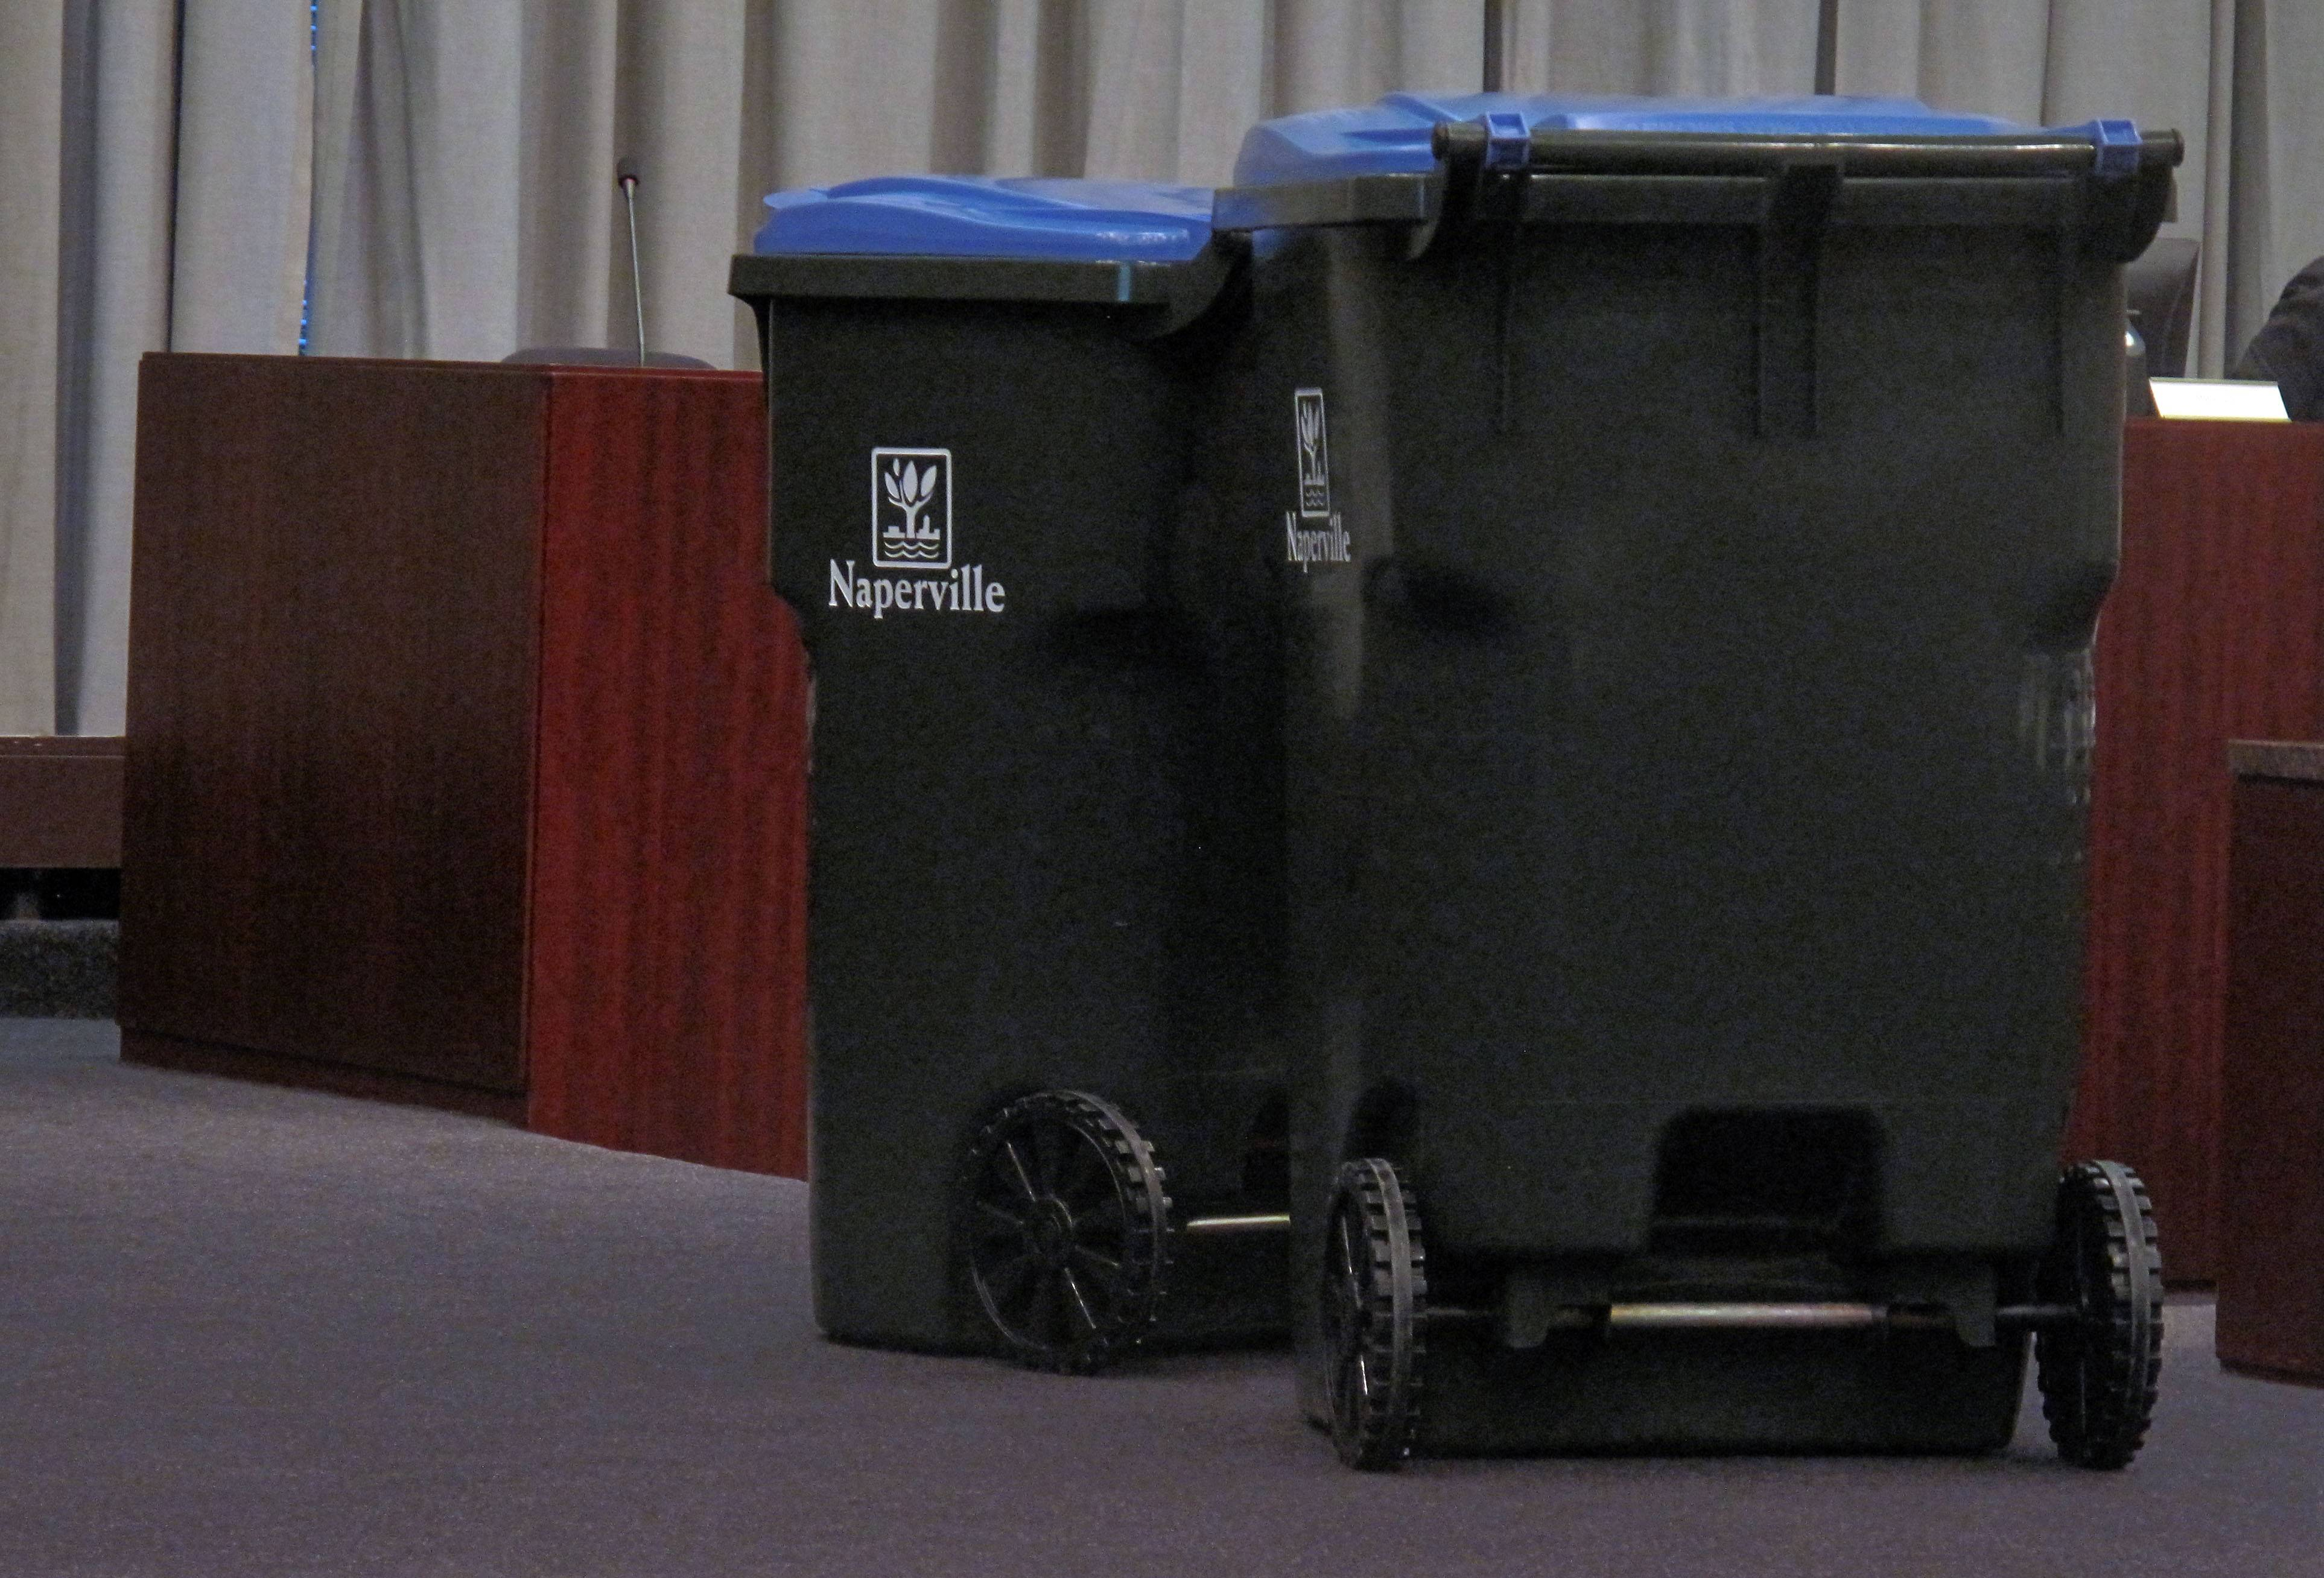 Naperville City Council on Tuesday night approved a $1.8 million contract for the purchase of recycling carts to be delivered this summer. Residents will be able to choose one of three sizes of carts: 32-gallon, 65-gallon, left, or 95-gallon, right.